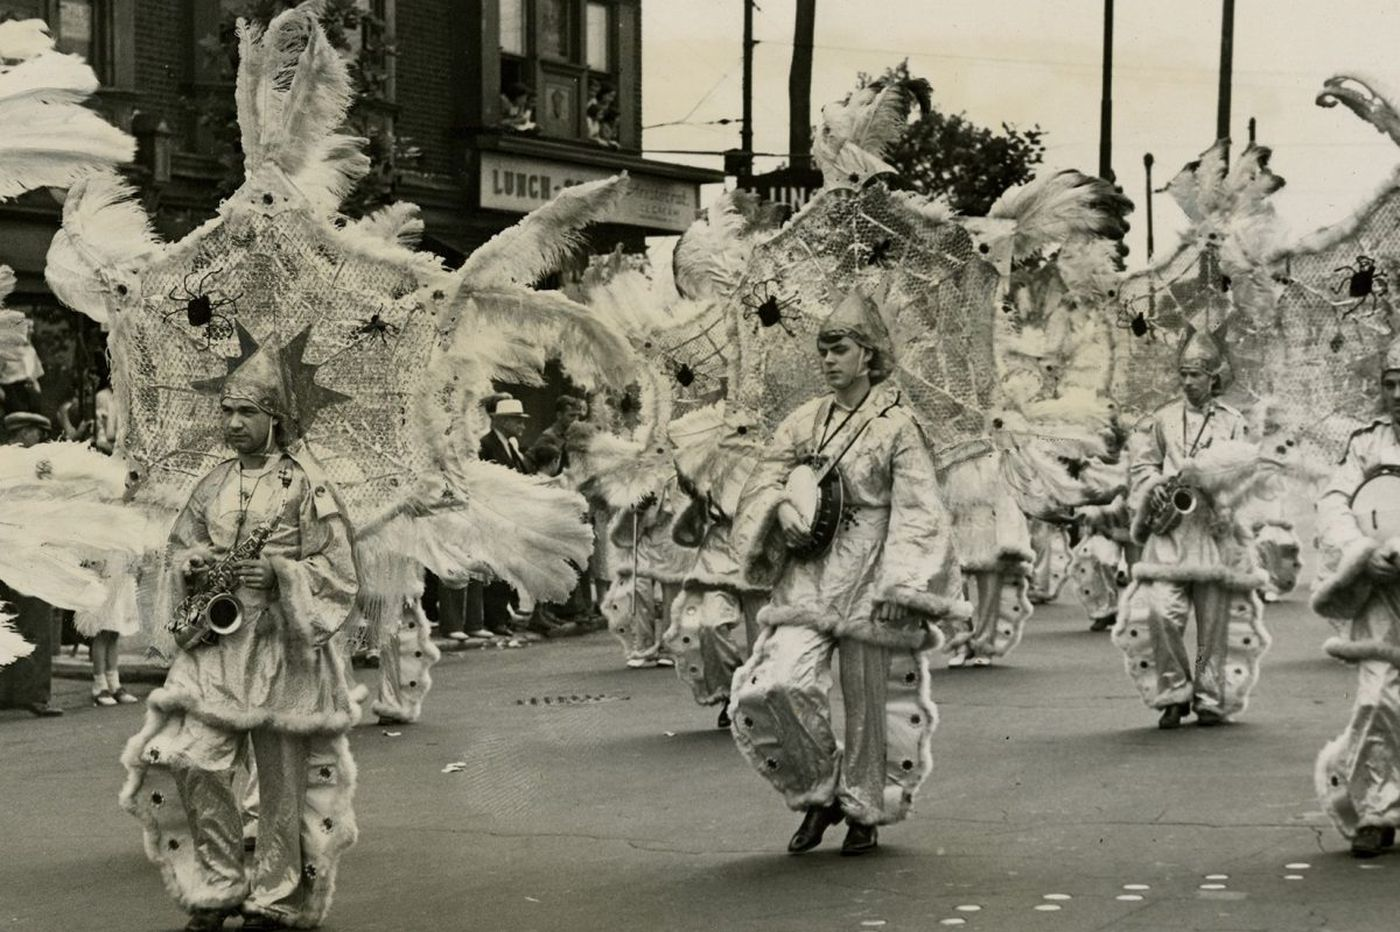 Strange incidents from the early days of the Mummers Parade